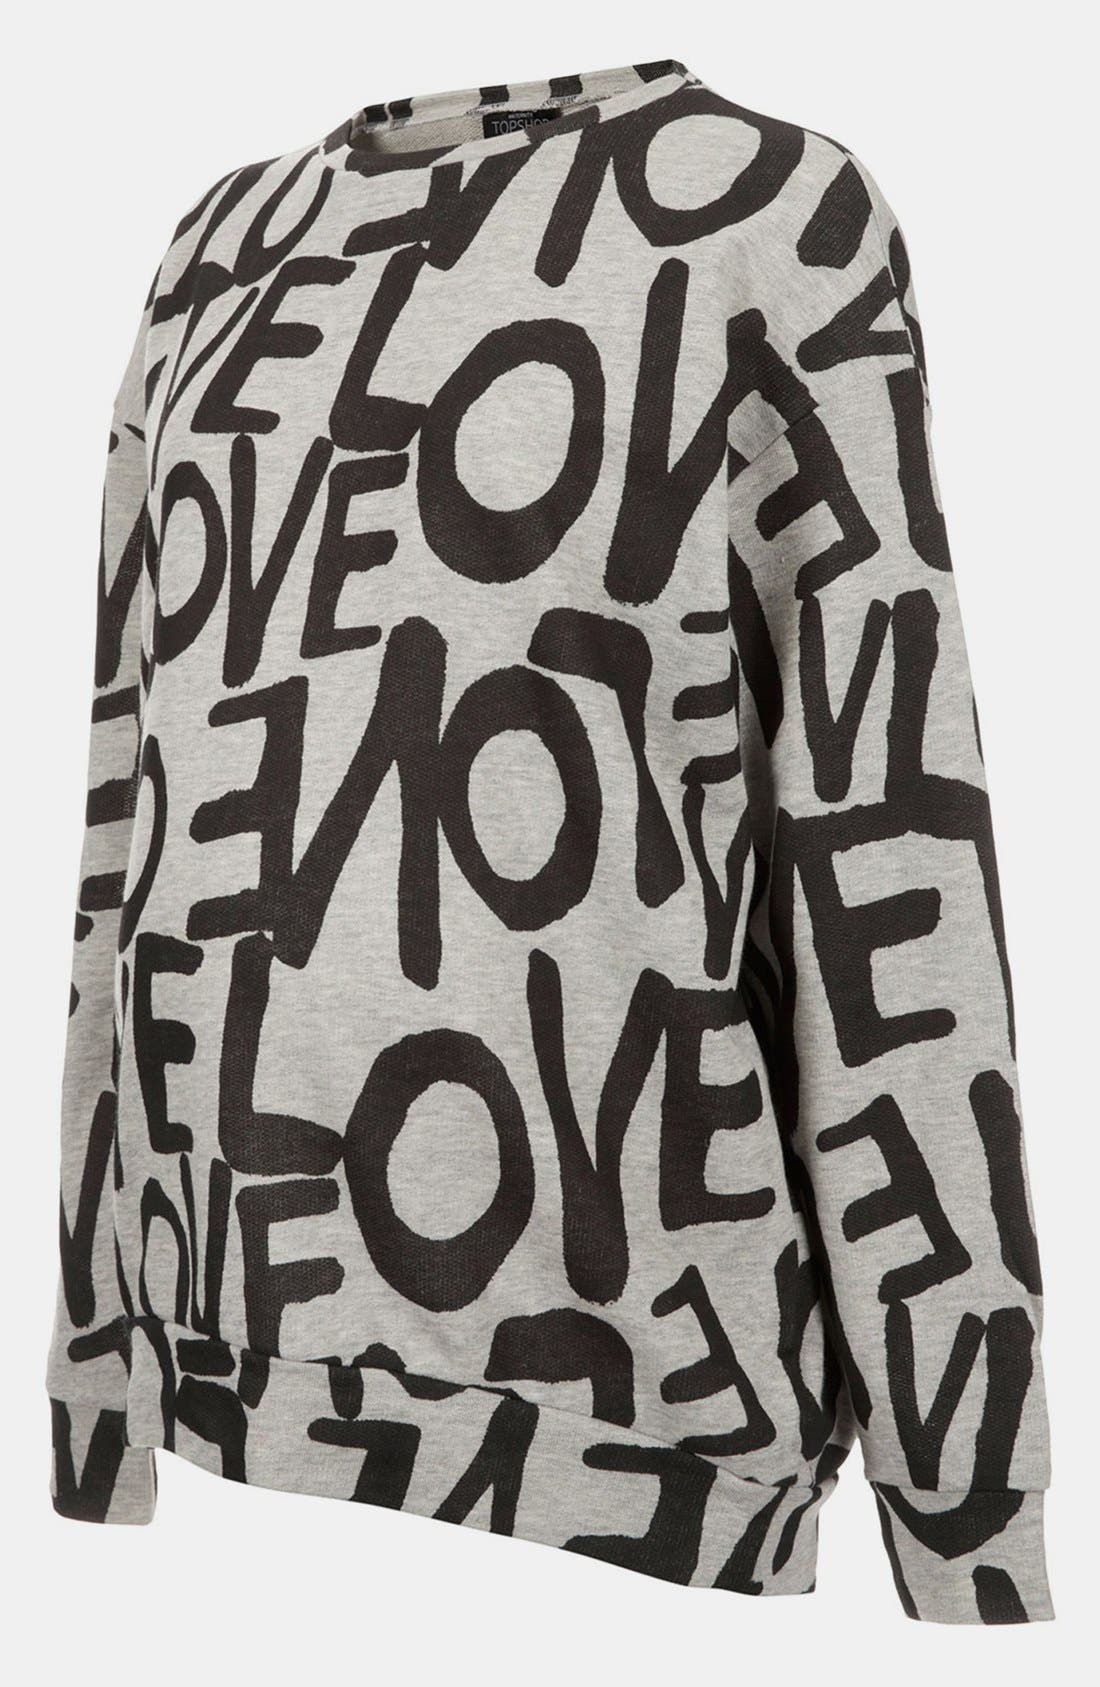 Alternate Image 1 Selected - Topshop 'Love' Maternity Sweatshirt